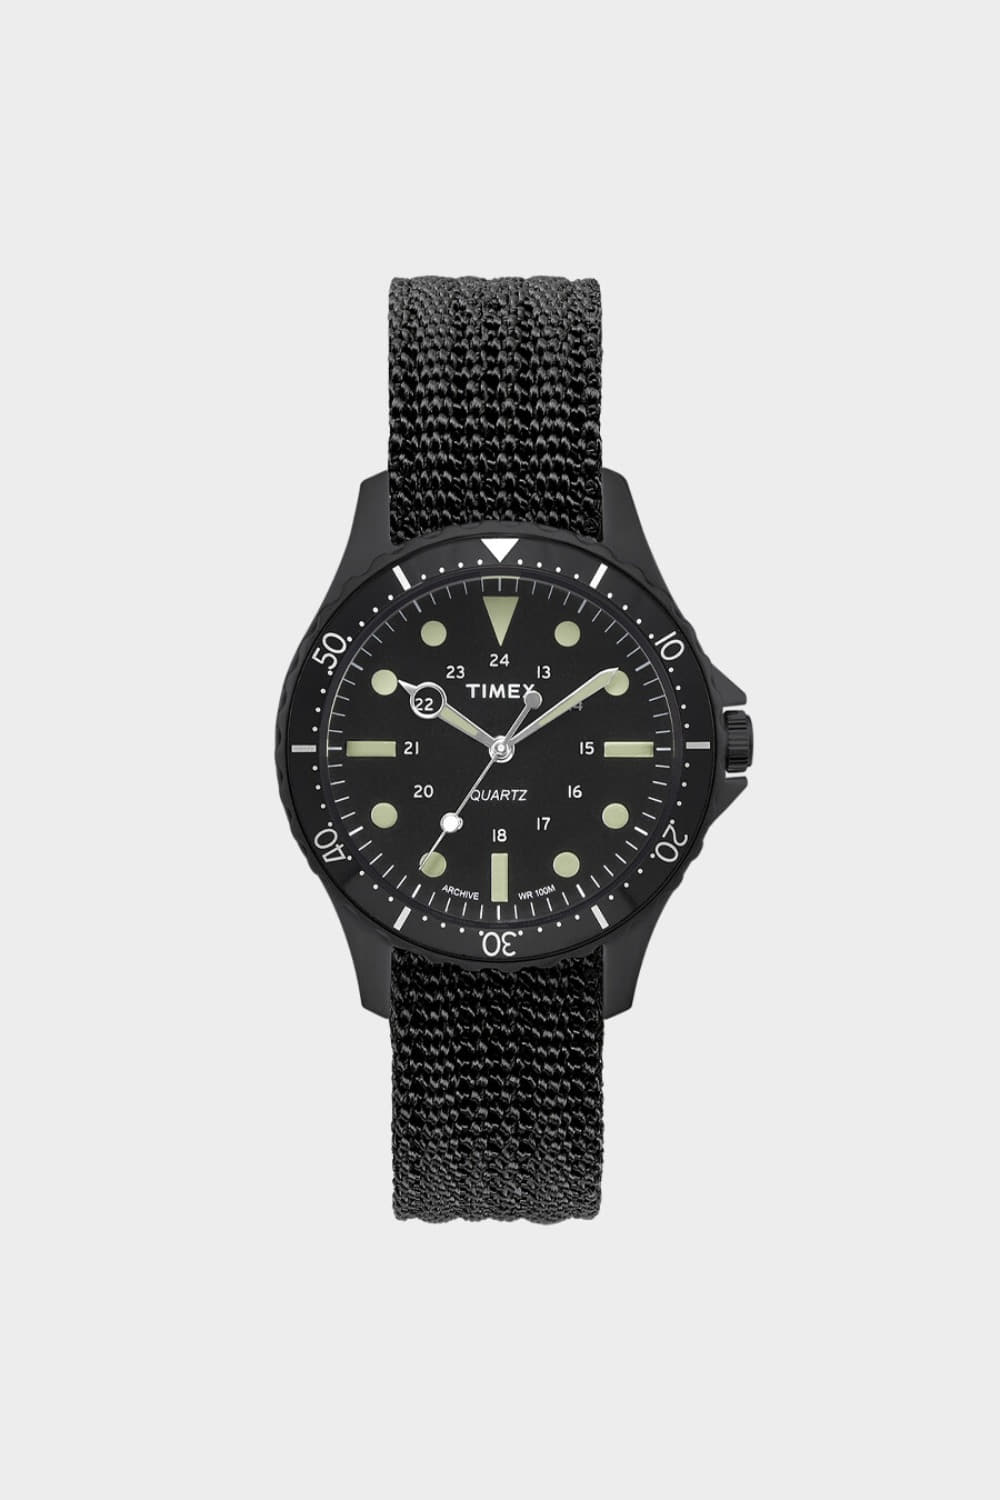 TIMEX ARCHIVE NAVI 38MM BLACK (TMTW2T12100)